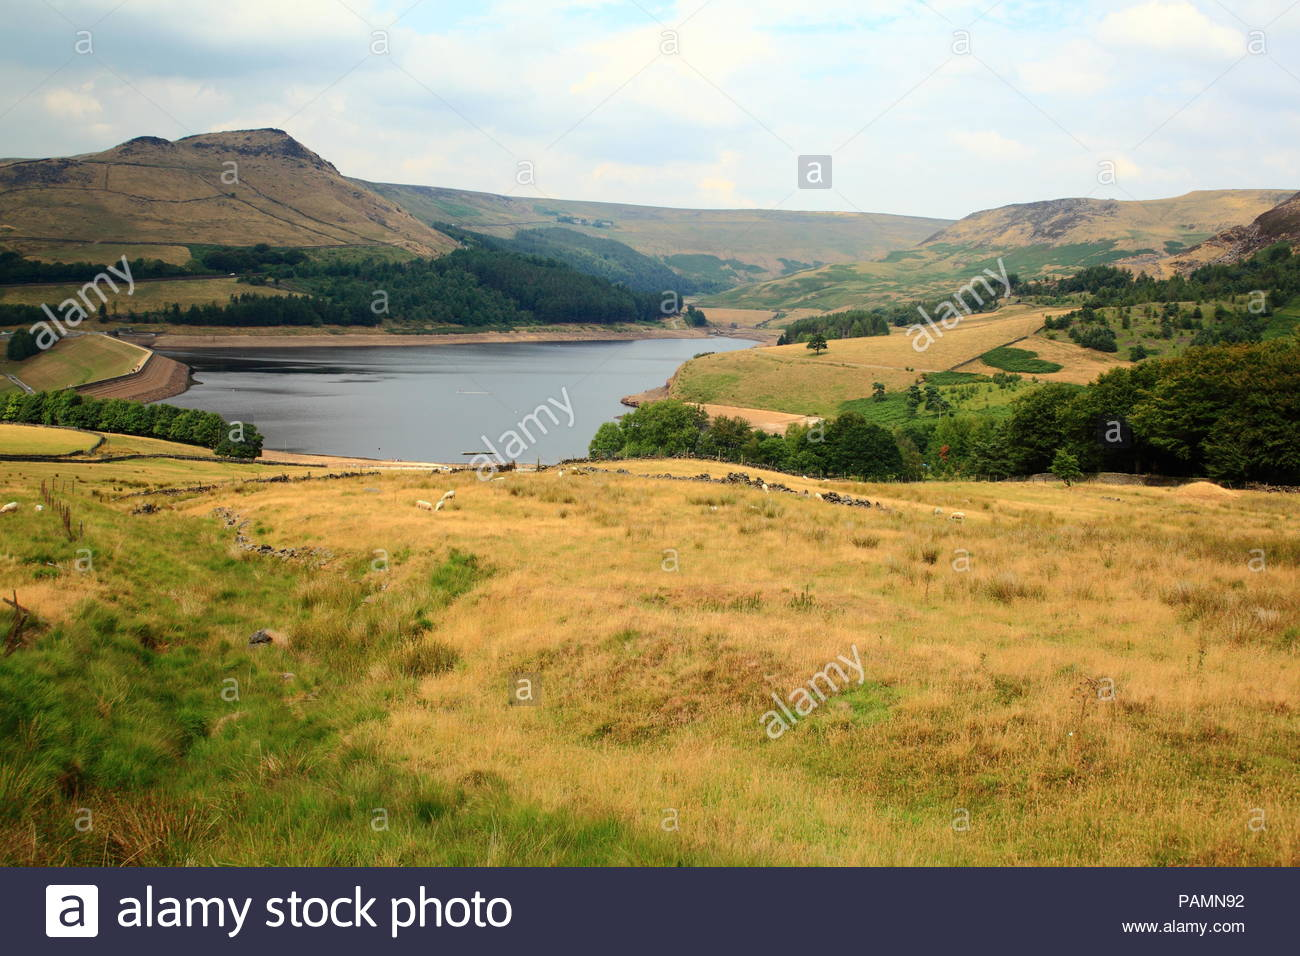 Landscape views of Dove Stone Reservoir during late afternoon summer July 2018. Greenfield, Oldham, Saddleworth, UK - Stock Image